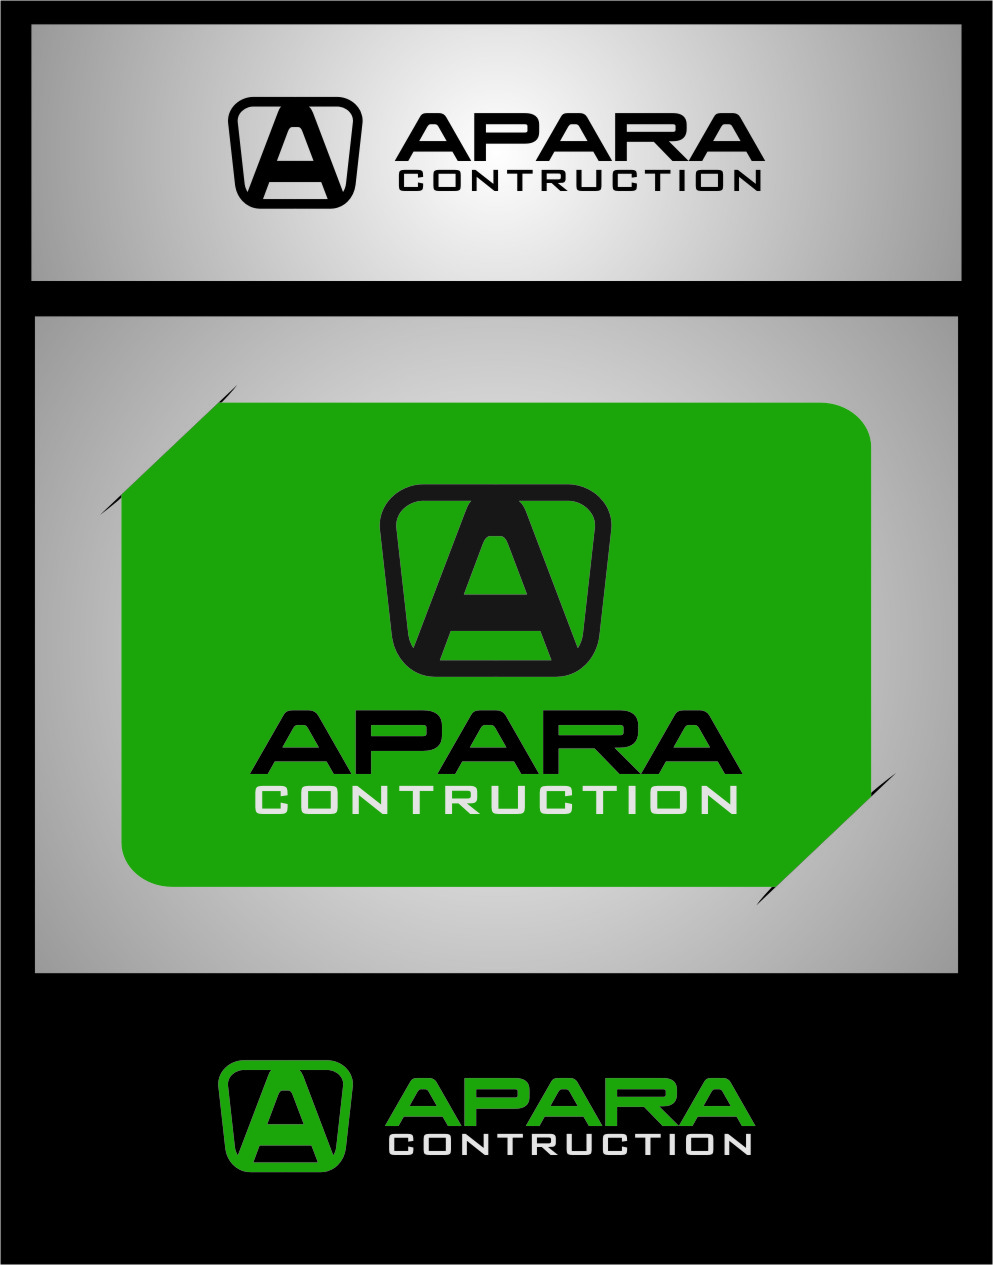 Logo Design by Ngepet_art - Entry No. 186 in the Logo Design Contest Apara Construction Logo Design.